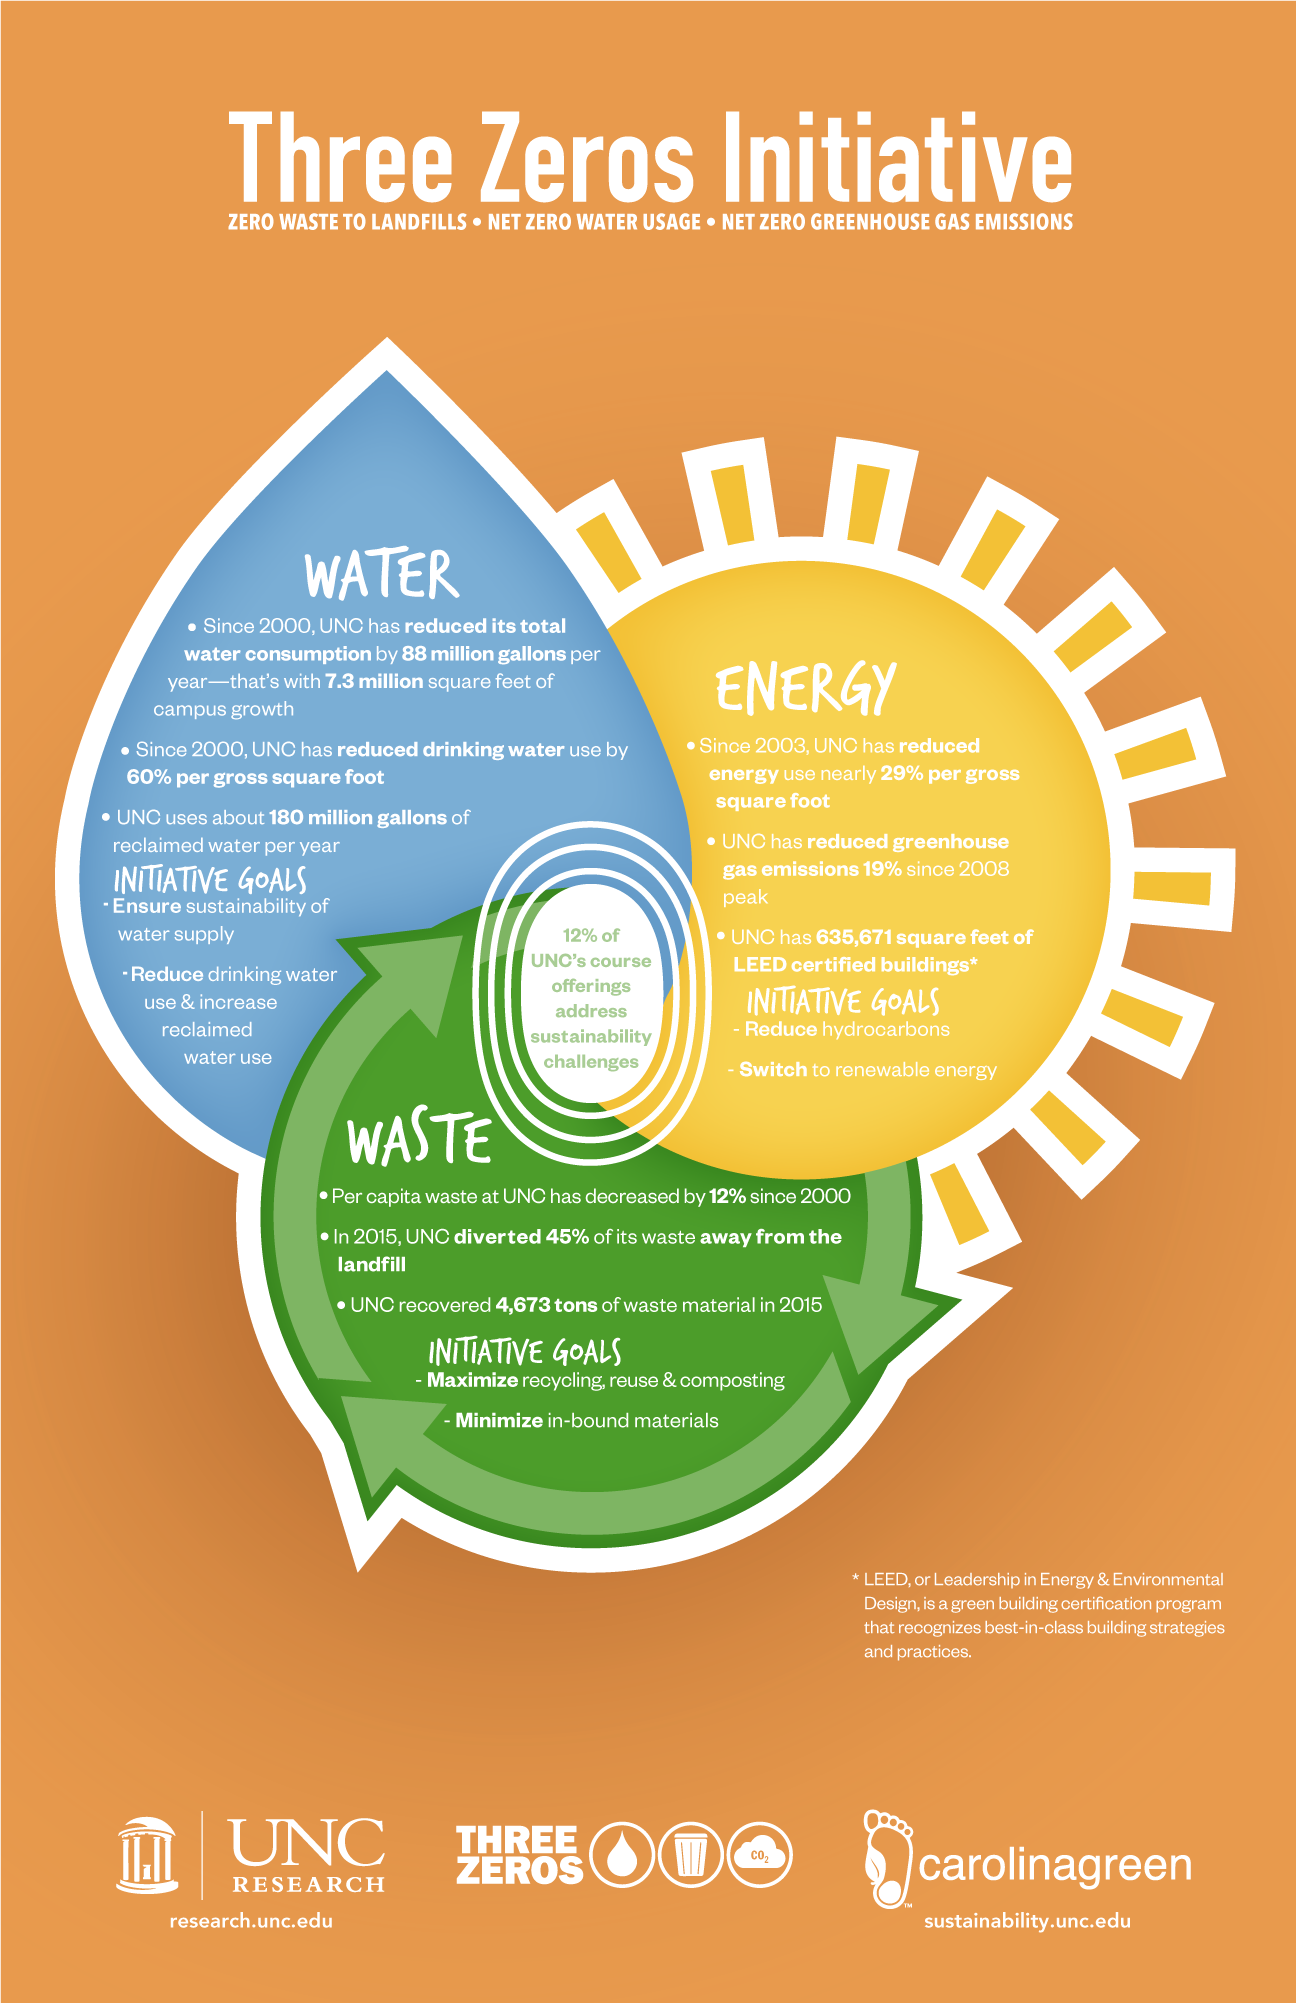 Three Zeros Initiative Infographic: Zero waste to landfills, net zero water usage, and net zero greenhouse gas emissions Infographic: Water: Since 2000, UNC has reduced its total water consumption by 88 million gallons per year - that's with 7.3 million square feet of campus growth. Since 2000, UNC has reduced drinking water use by 60% per gross square foot. UNC uses about 180 million gallons of reclaimed water per year. Initiative goals: Ensure sustainability of water supply. Reduce drinking water use and increase reclaimed water use. Energy: Since 2003, UNC has reduced energy use nearly 29% per gross square foot. UNC has reduced greenhouse gas emissions 19% since 2008 peak. UNC has 635,671 square feet of LEED certified buildings*. Initiative Goals: Reduce hydrocarbons. Switch to renewable energy. Waste: Per capita waste at UNC has decreased by 12% since 2000. In 2015, UNC diverted 45% of its waste away from the landfill. UNC recovered 4,673 tons of waste material in 2015. Initiative Goals: maximize recycling, reuse and composting. Minimize in-bound materials. 12% of UNC's course offerings address sustainability challenges. *LEED, or Leadership in Energy & Environmental Design, is a green building certification program that recognizes best-in-class building strategies and practices.